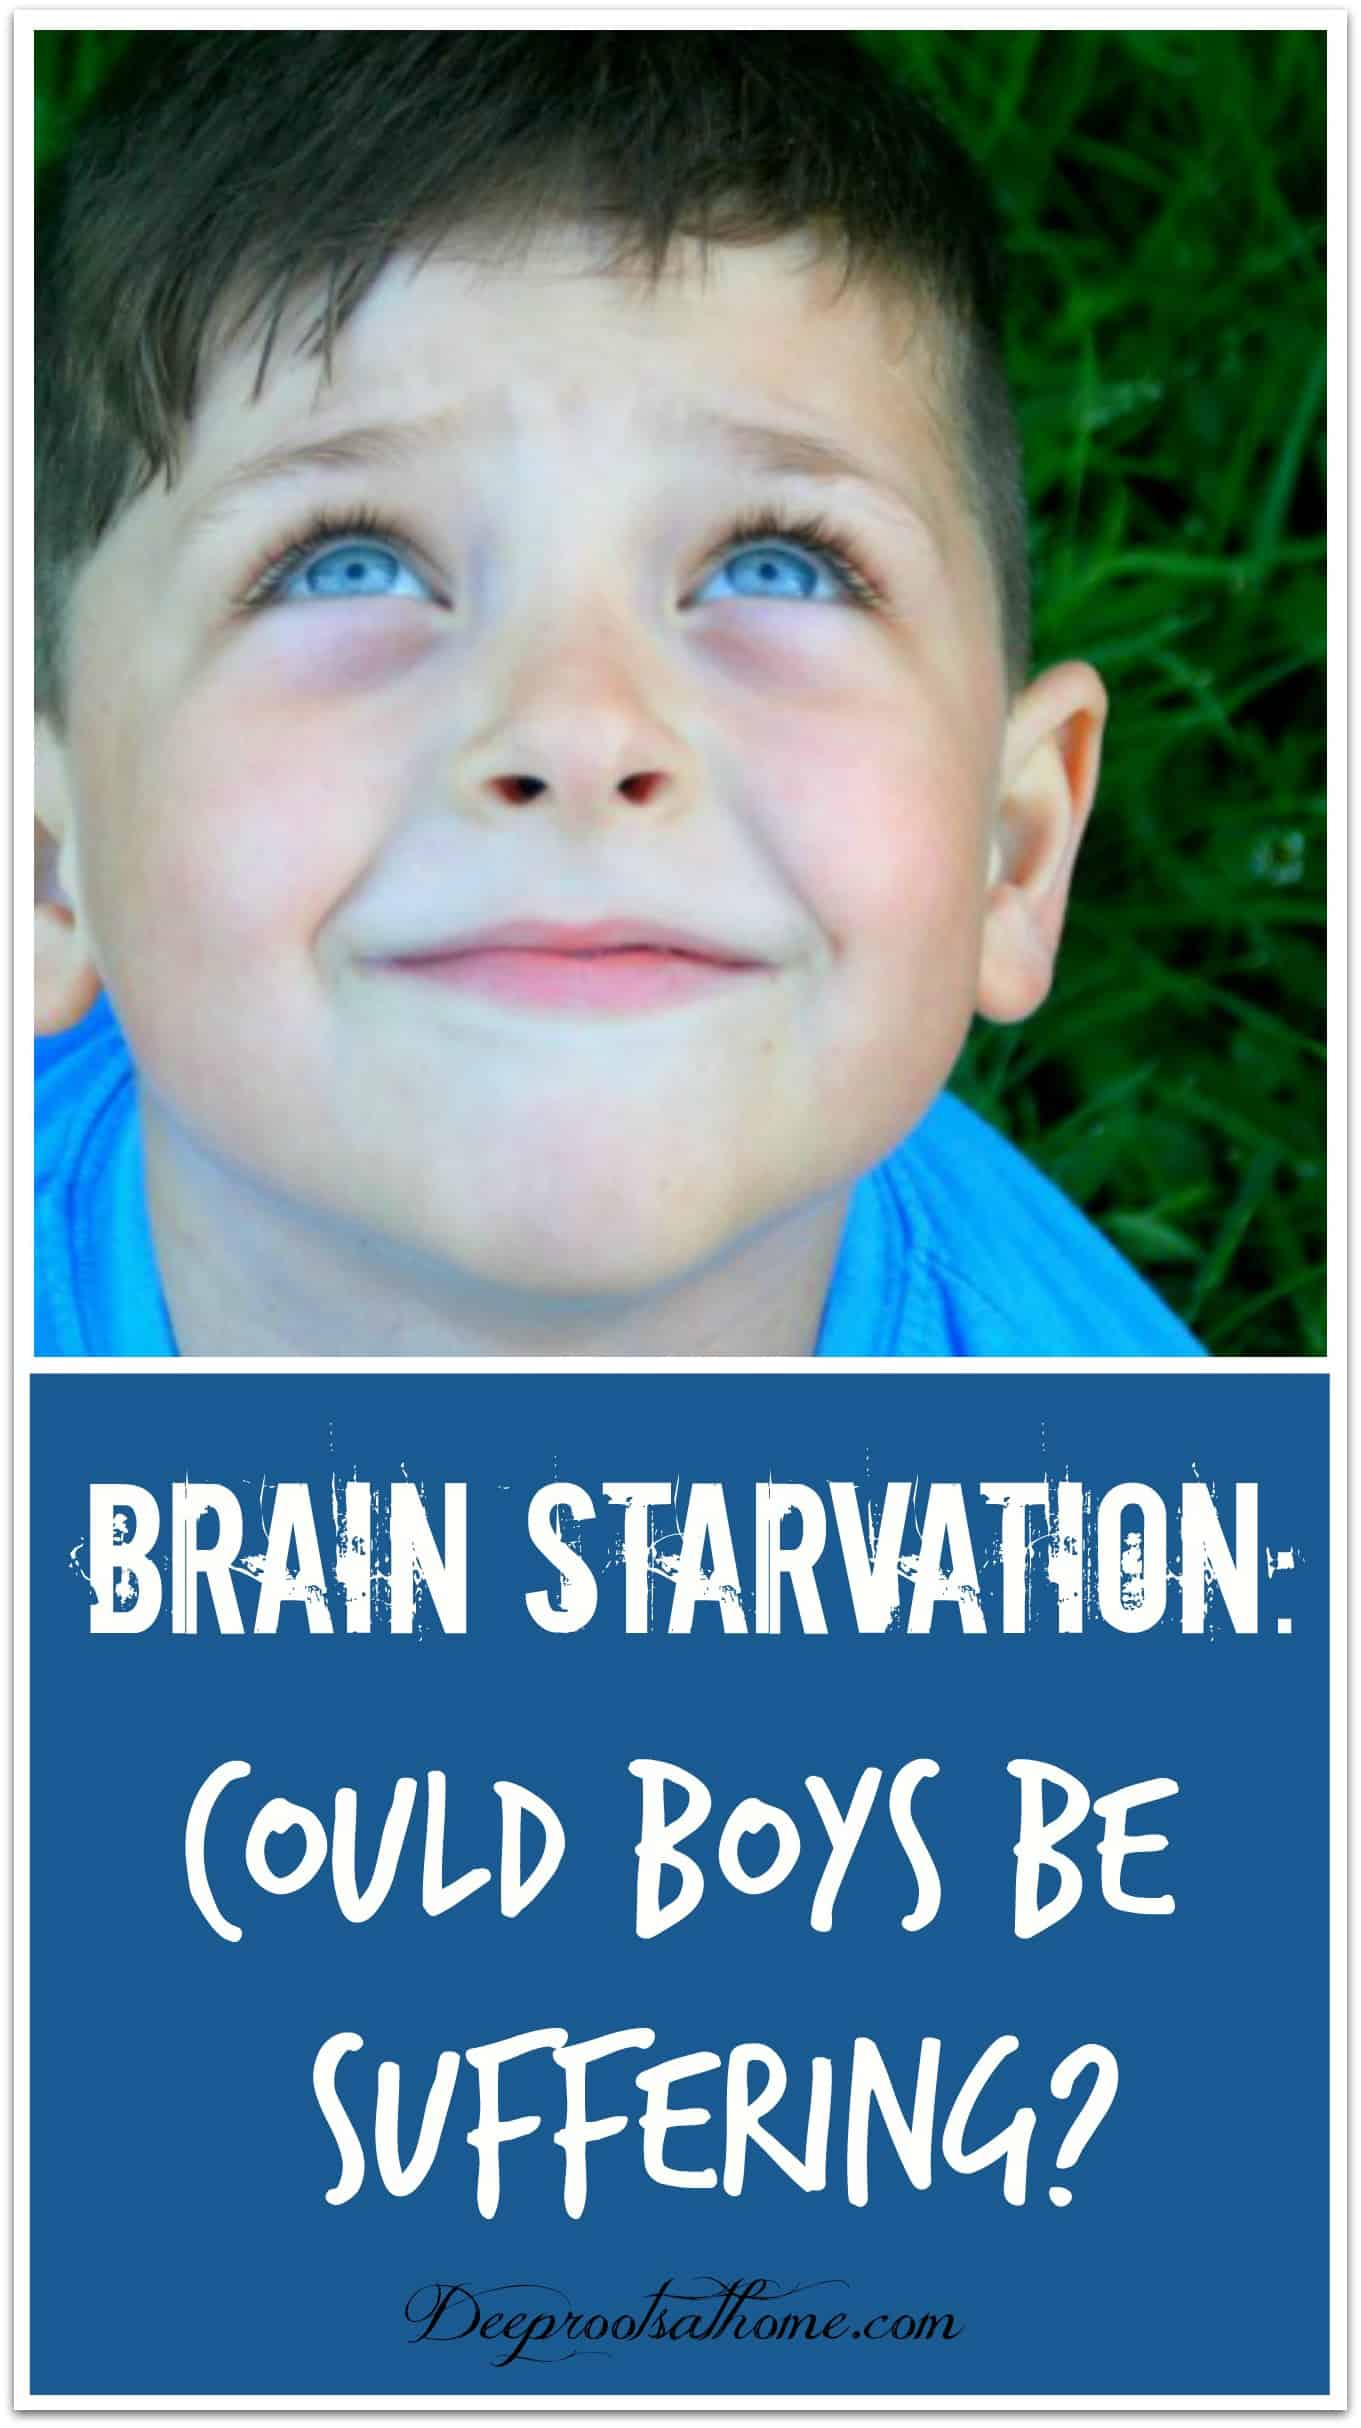 Brain Starvation: Could Boys Be Suffering?